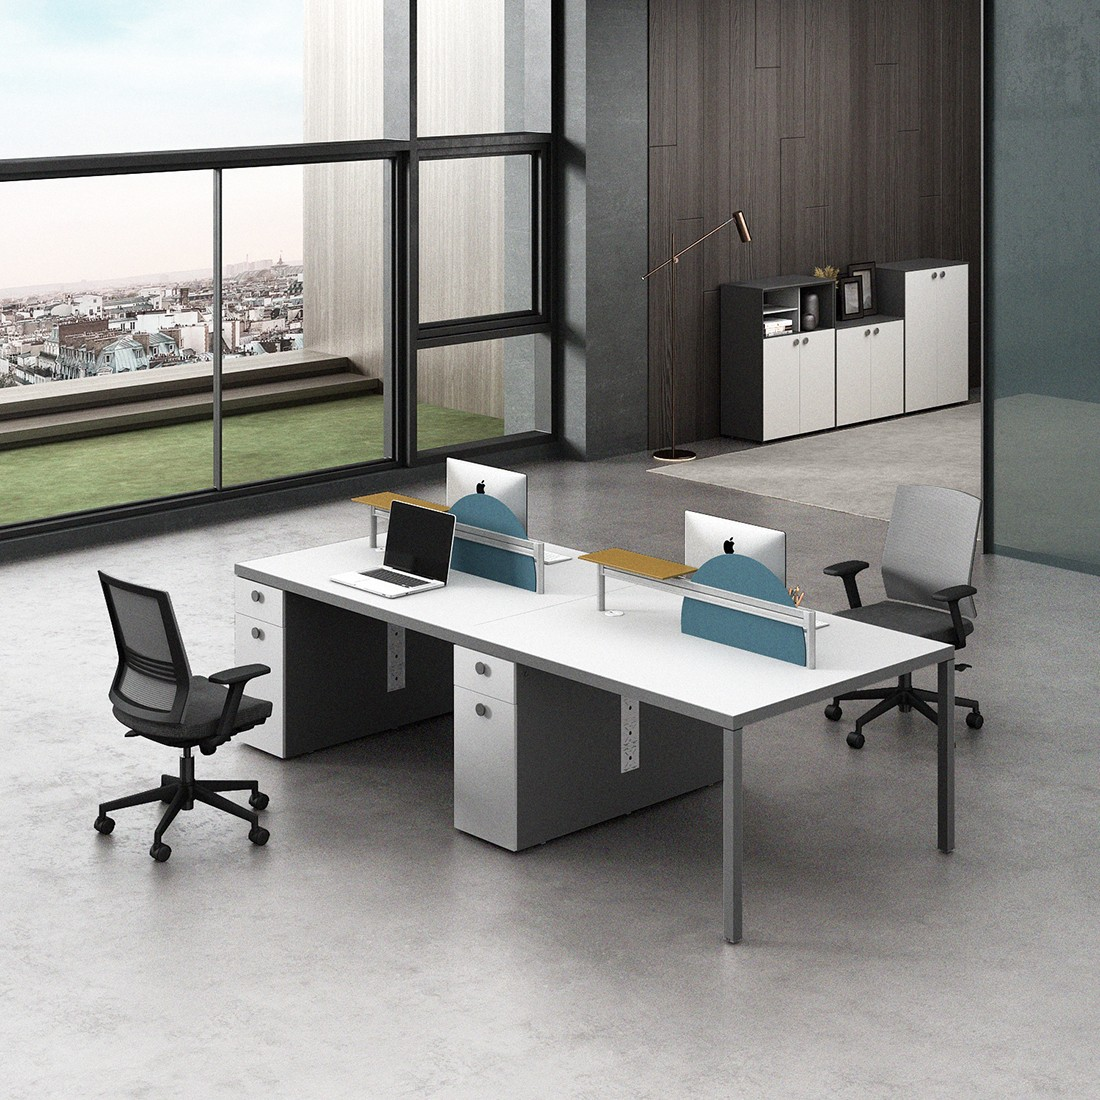 news-GOJO-Best Sellers of New Collections-Novel and Practical Workstations-img-1